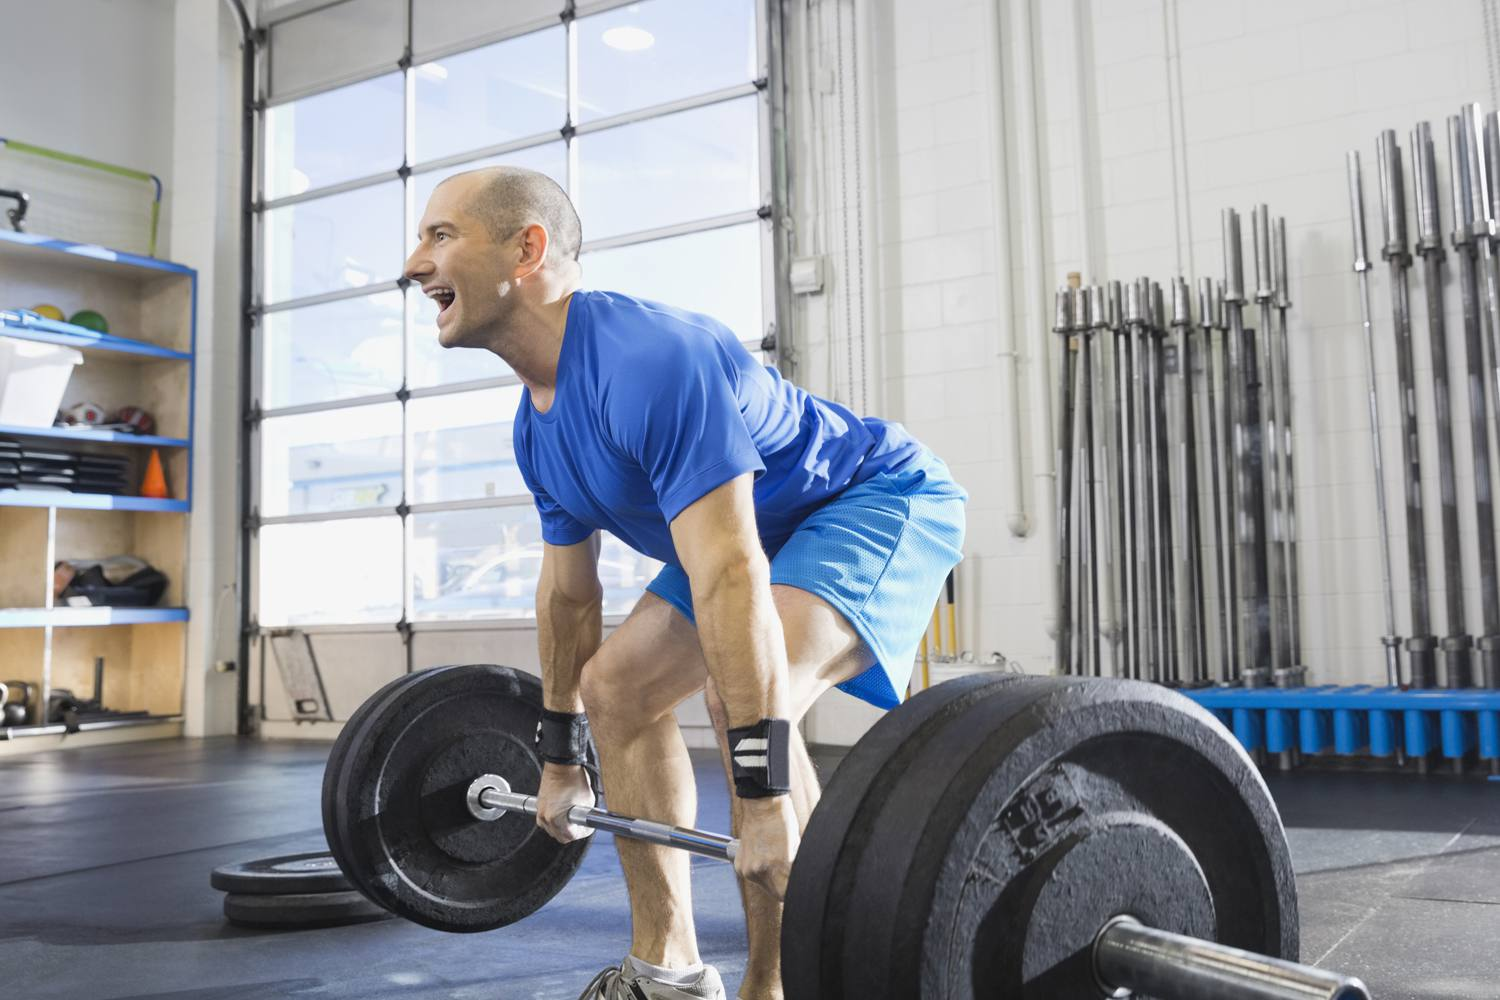 How To Properly Do The Deadlift